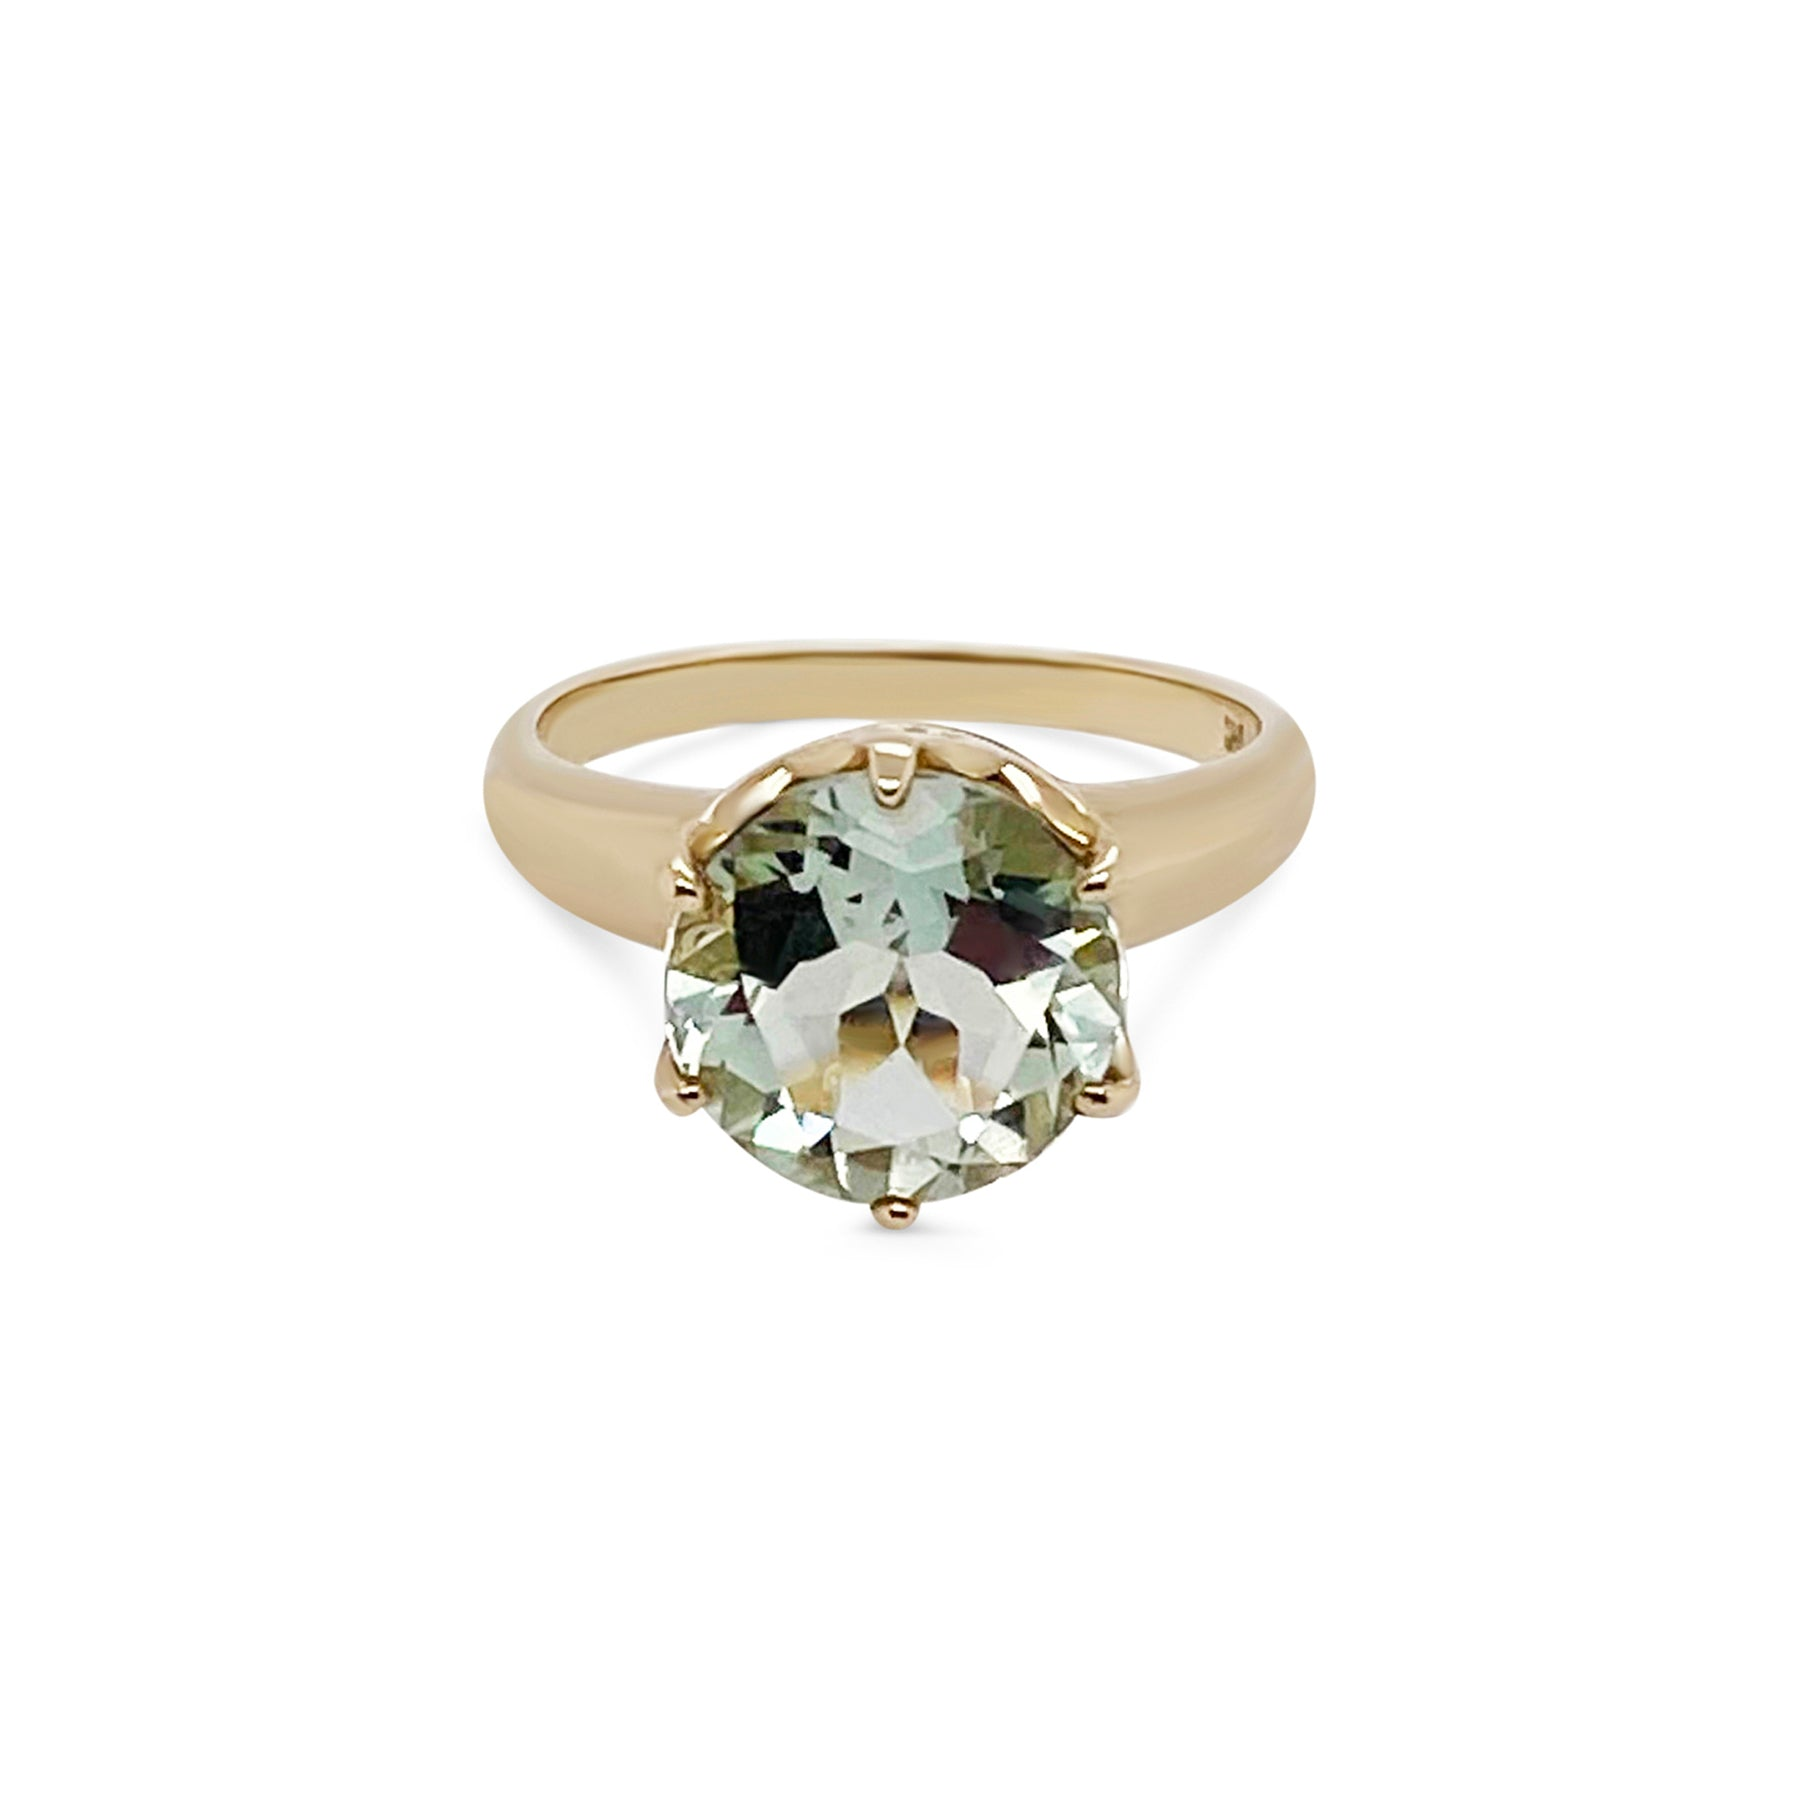 Green Amythst Stoned Ring